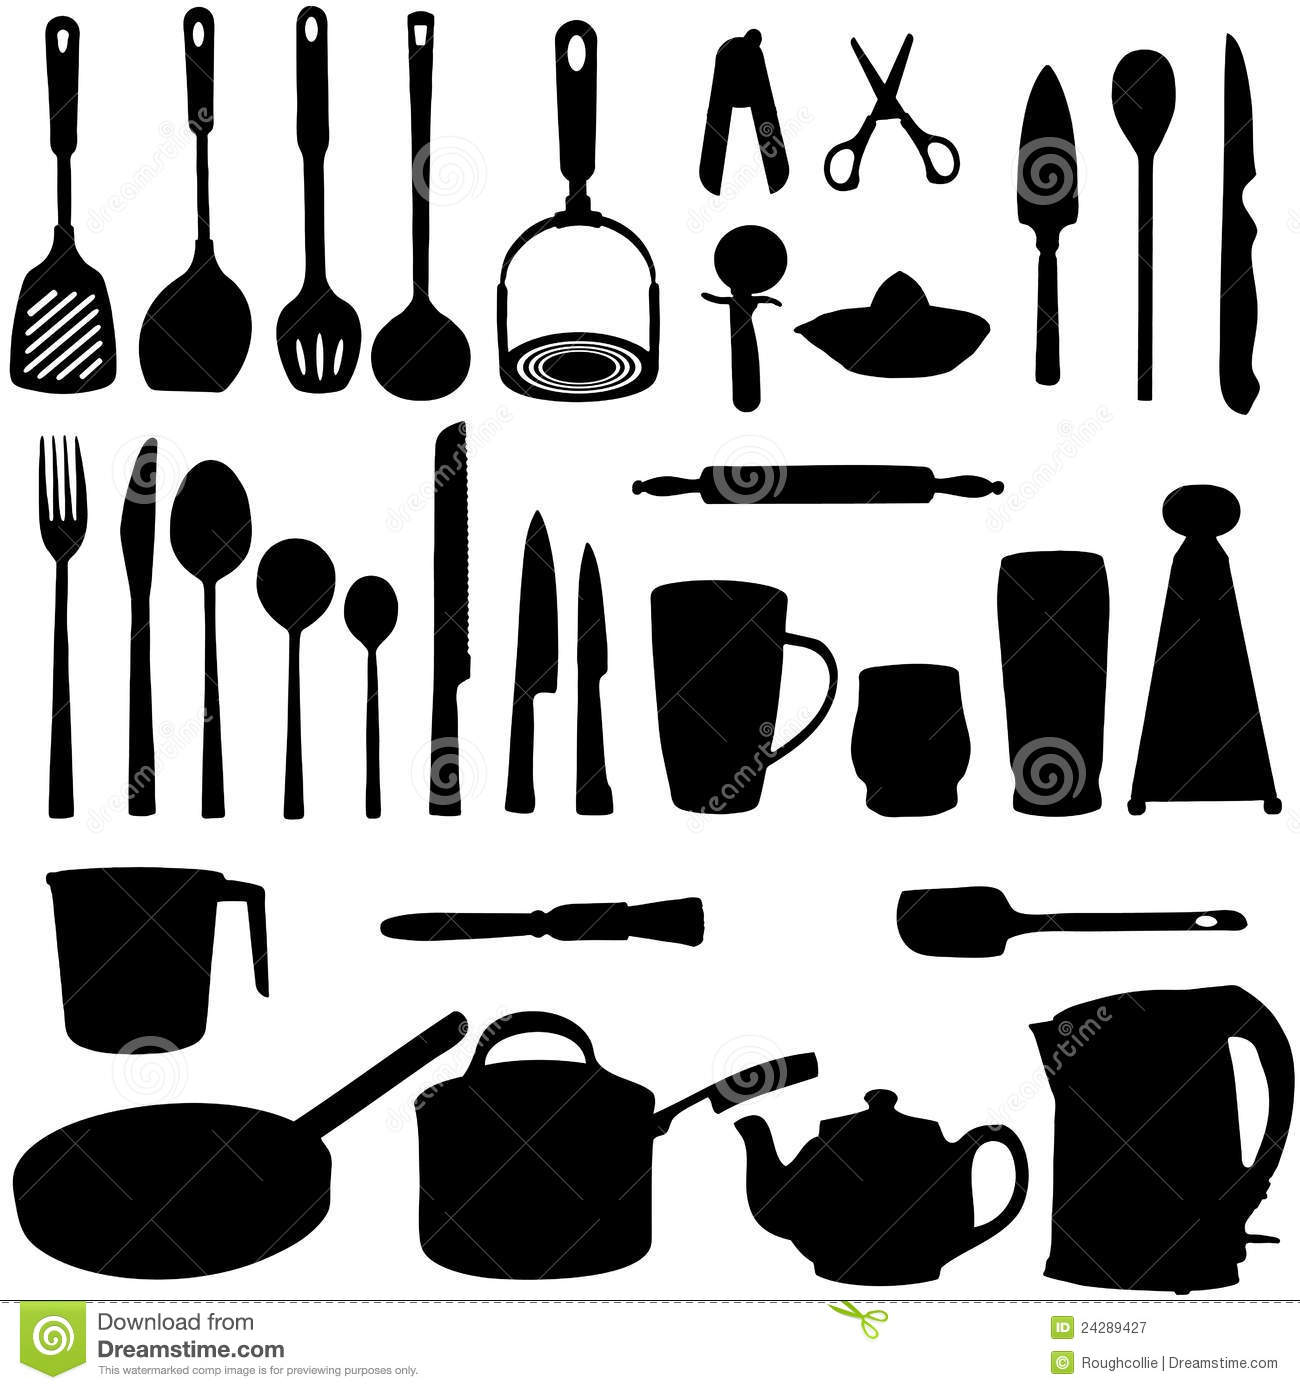 Kitchen utensils clip art pan - Kitchen Utensils Silhouette Royalty Free Stock Photography